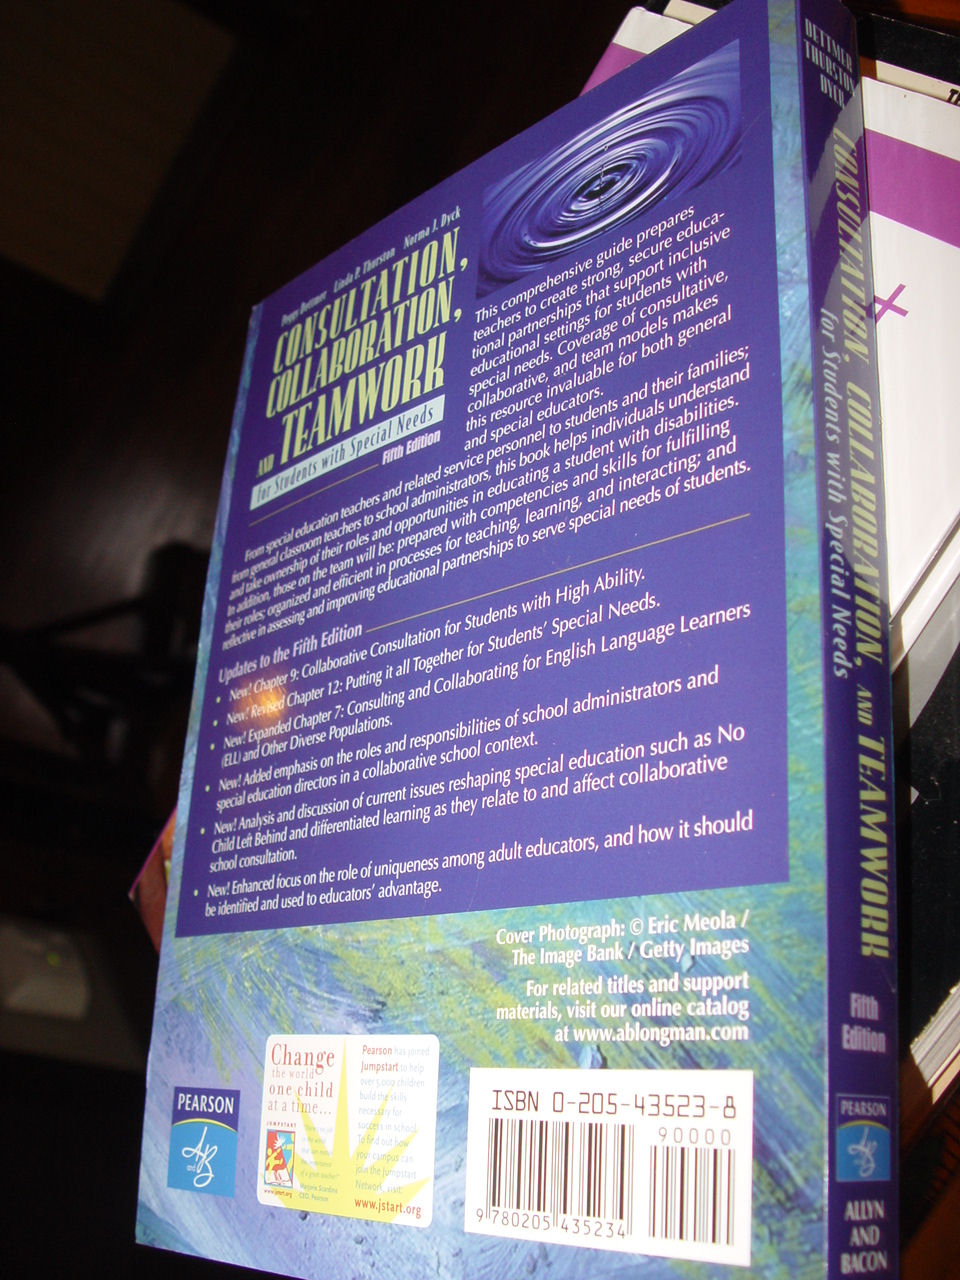 Collaboration,                                         Consultation, and Teamwork for                                         Students with Special Needs (5th                                         Edition) by Peggy Dettmer, Linda                                         P. Thurston, Norma J. Dyck 1993